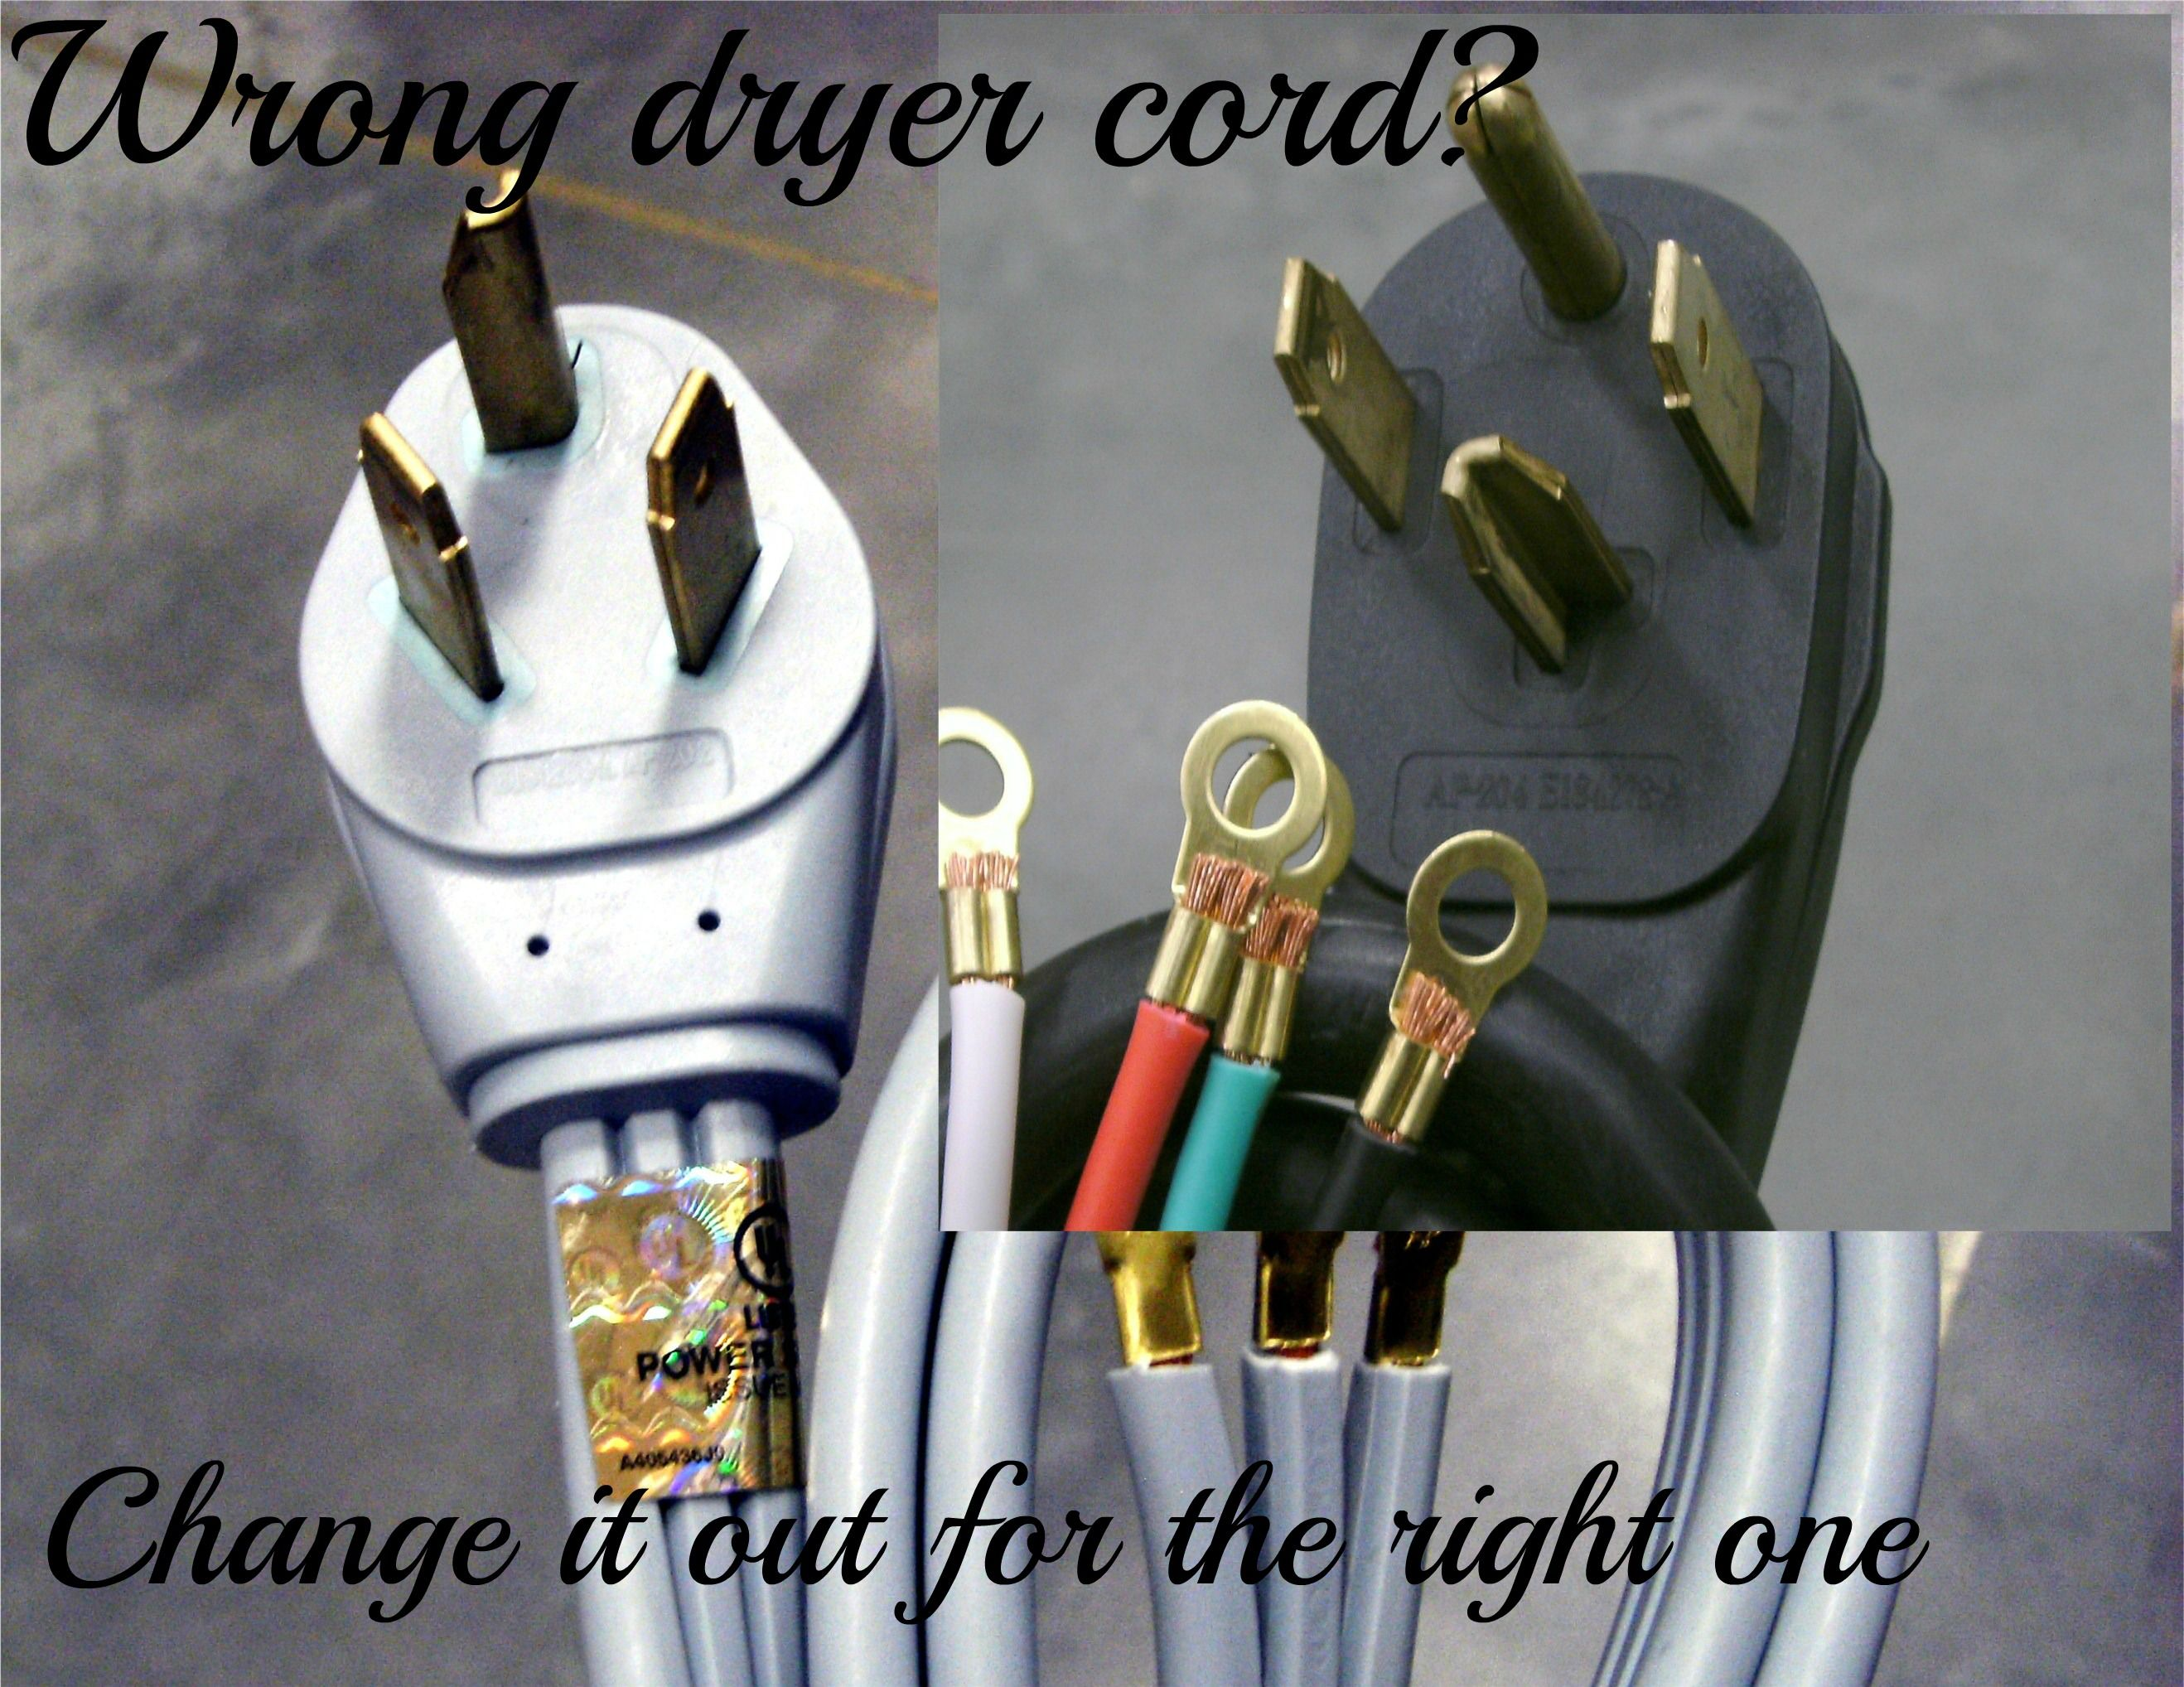 Diagram 3 Wire Dryer Wiring For Prong Outlet 39 Images Change 008f3bebc08145f0b0901e4baf420a22 Changing A To 4 Plug And Cord